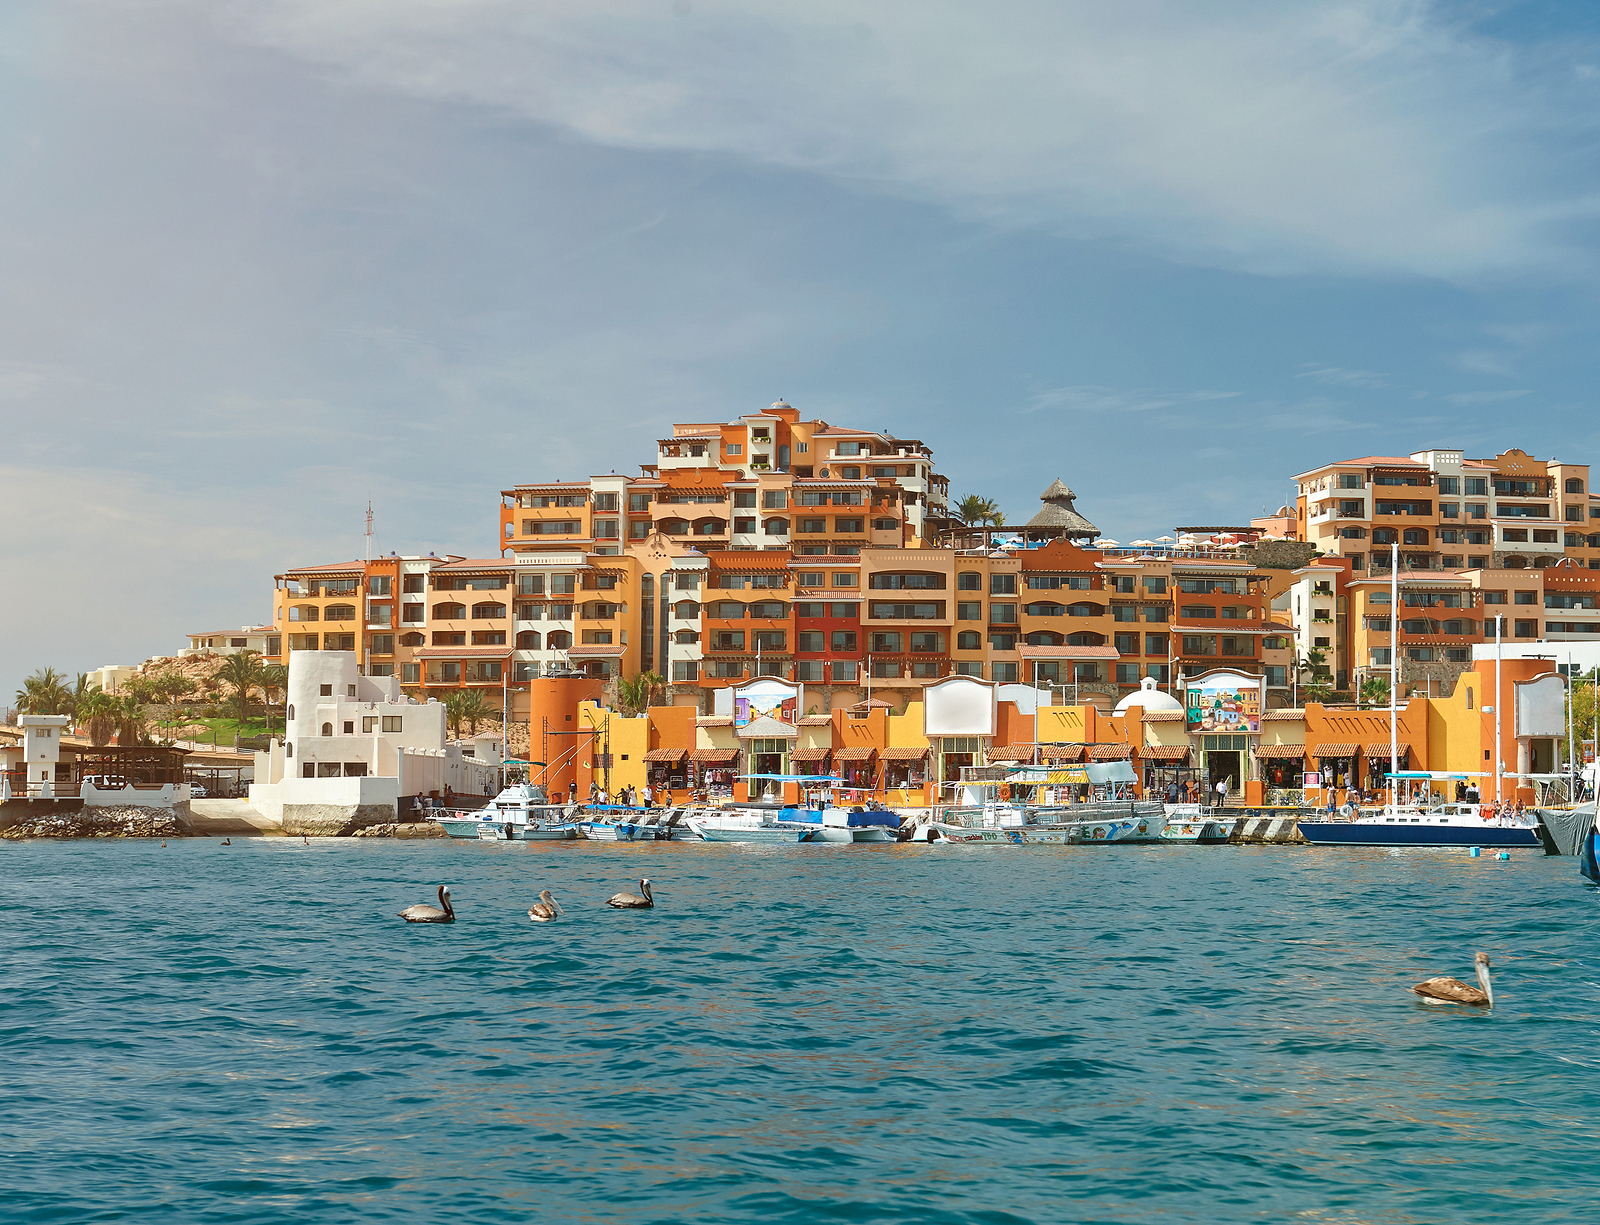 Real Estate in Cabo San Lucas